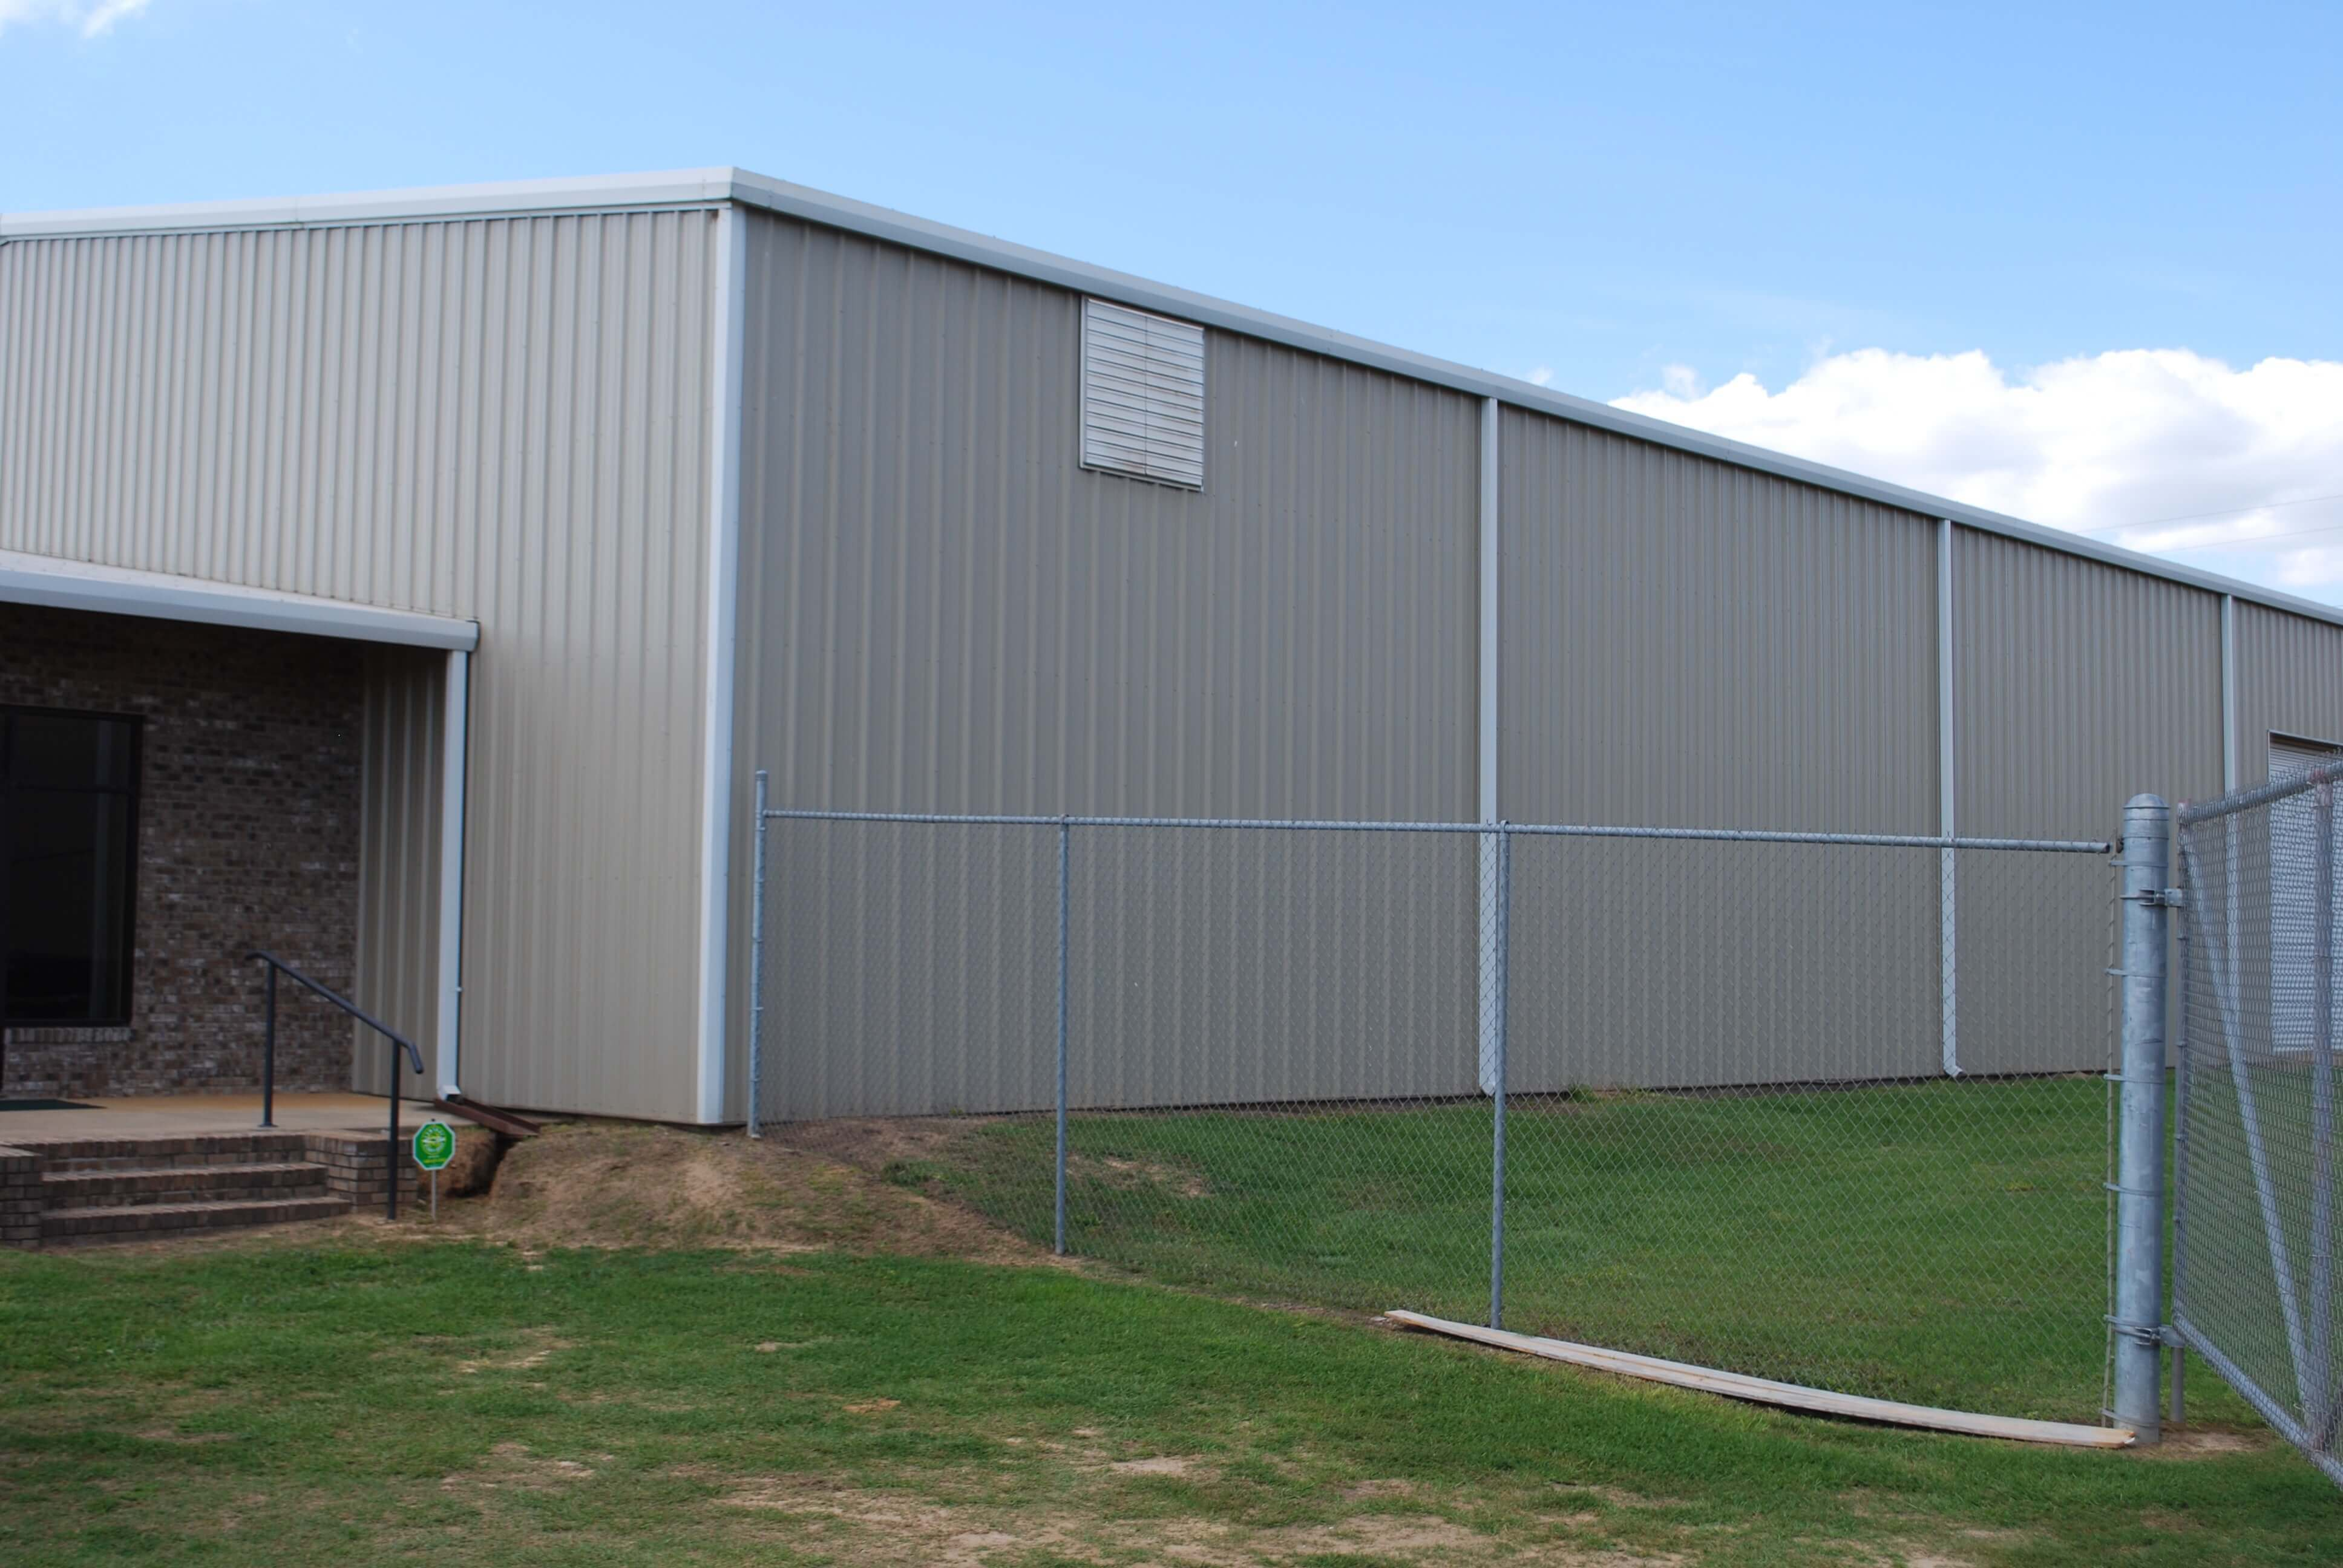 Metal Agricultural Amp Commercial Buildings Sheds And Shelters